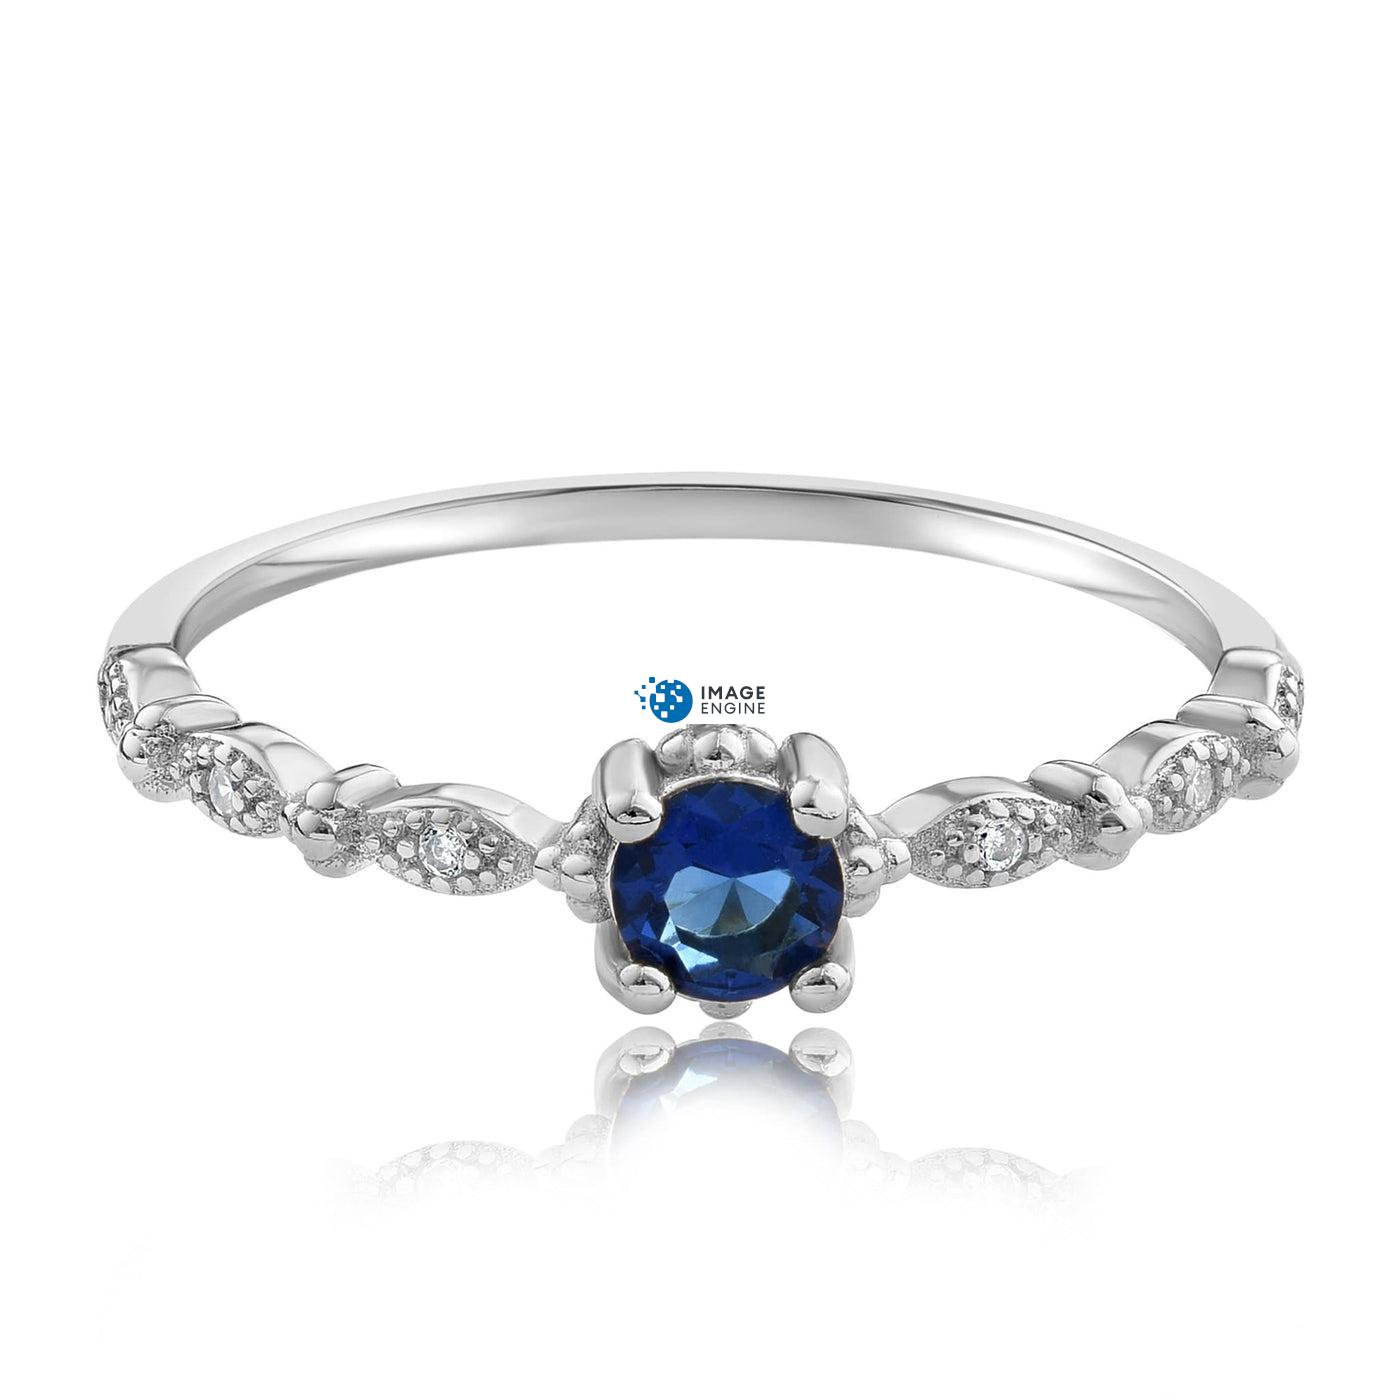 Garen Ring Blue Gemstone - Front View Facing Down - 925 Sterling Silver